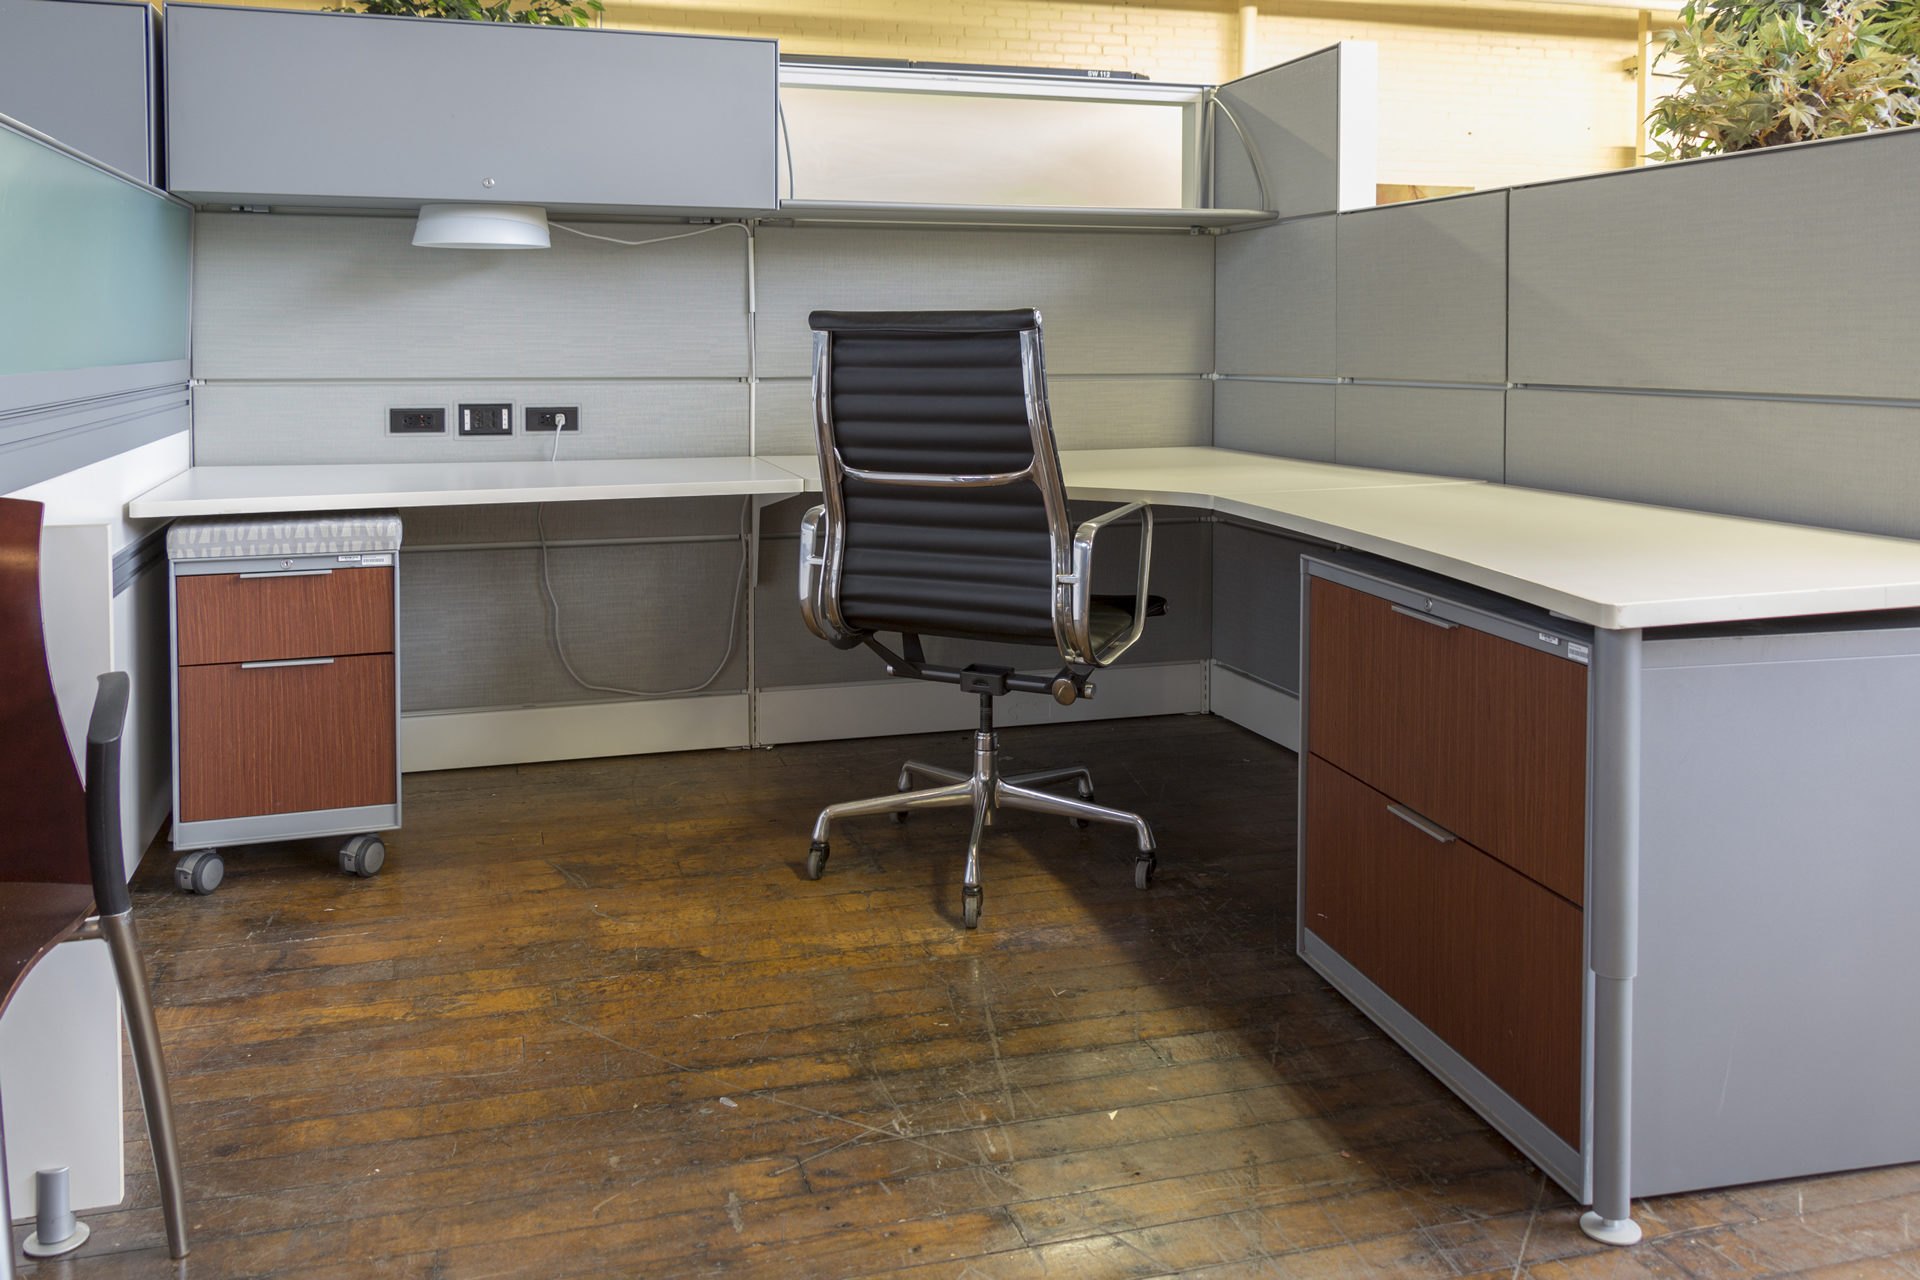 peartreeofficefurniture_peartreeofficefurniture_mg_2932.jpg